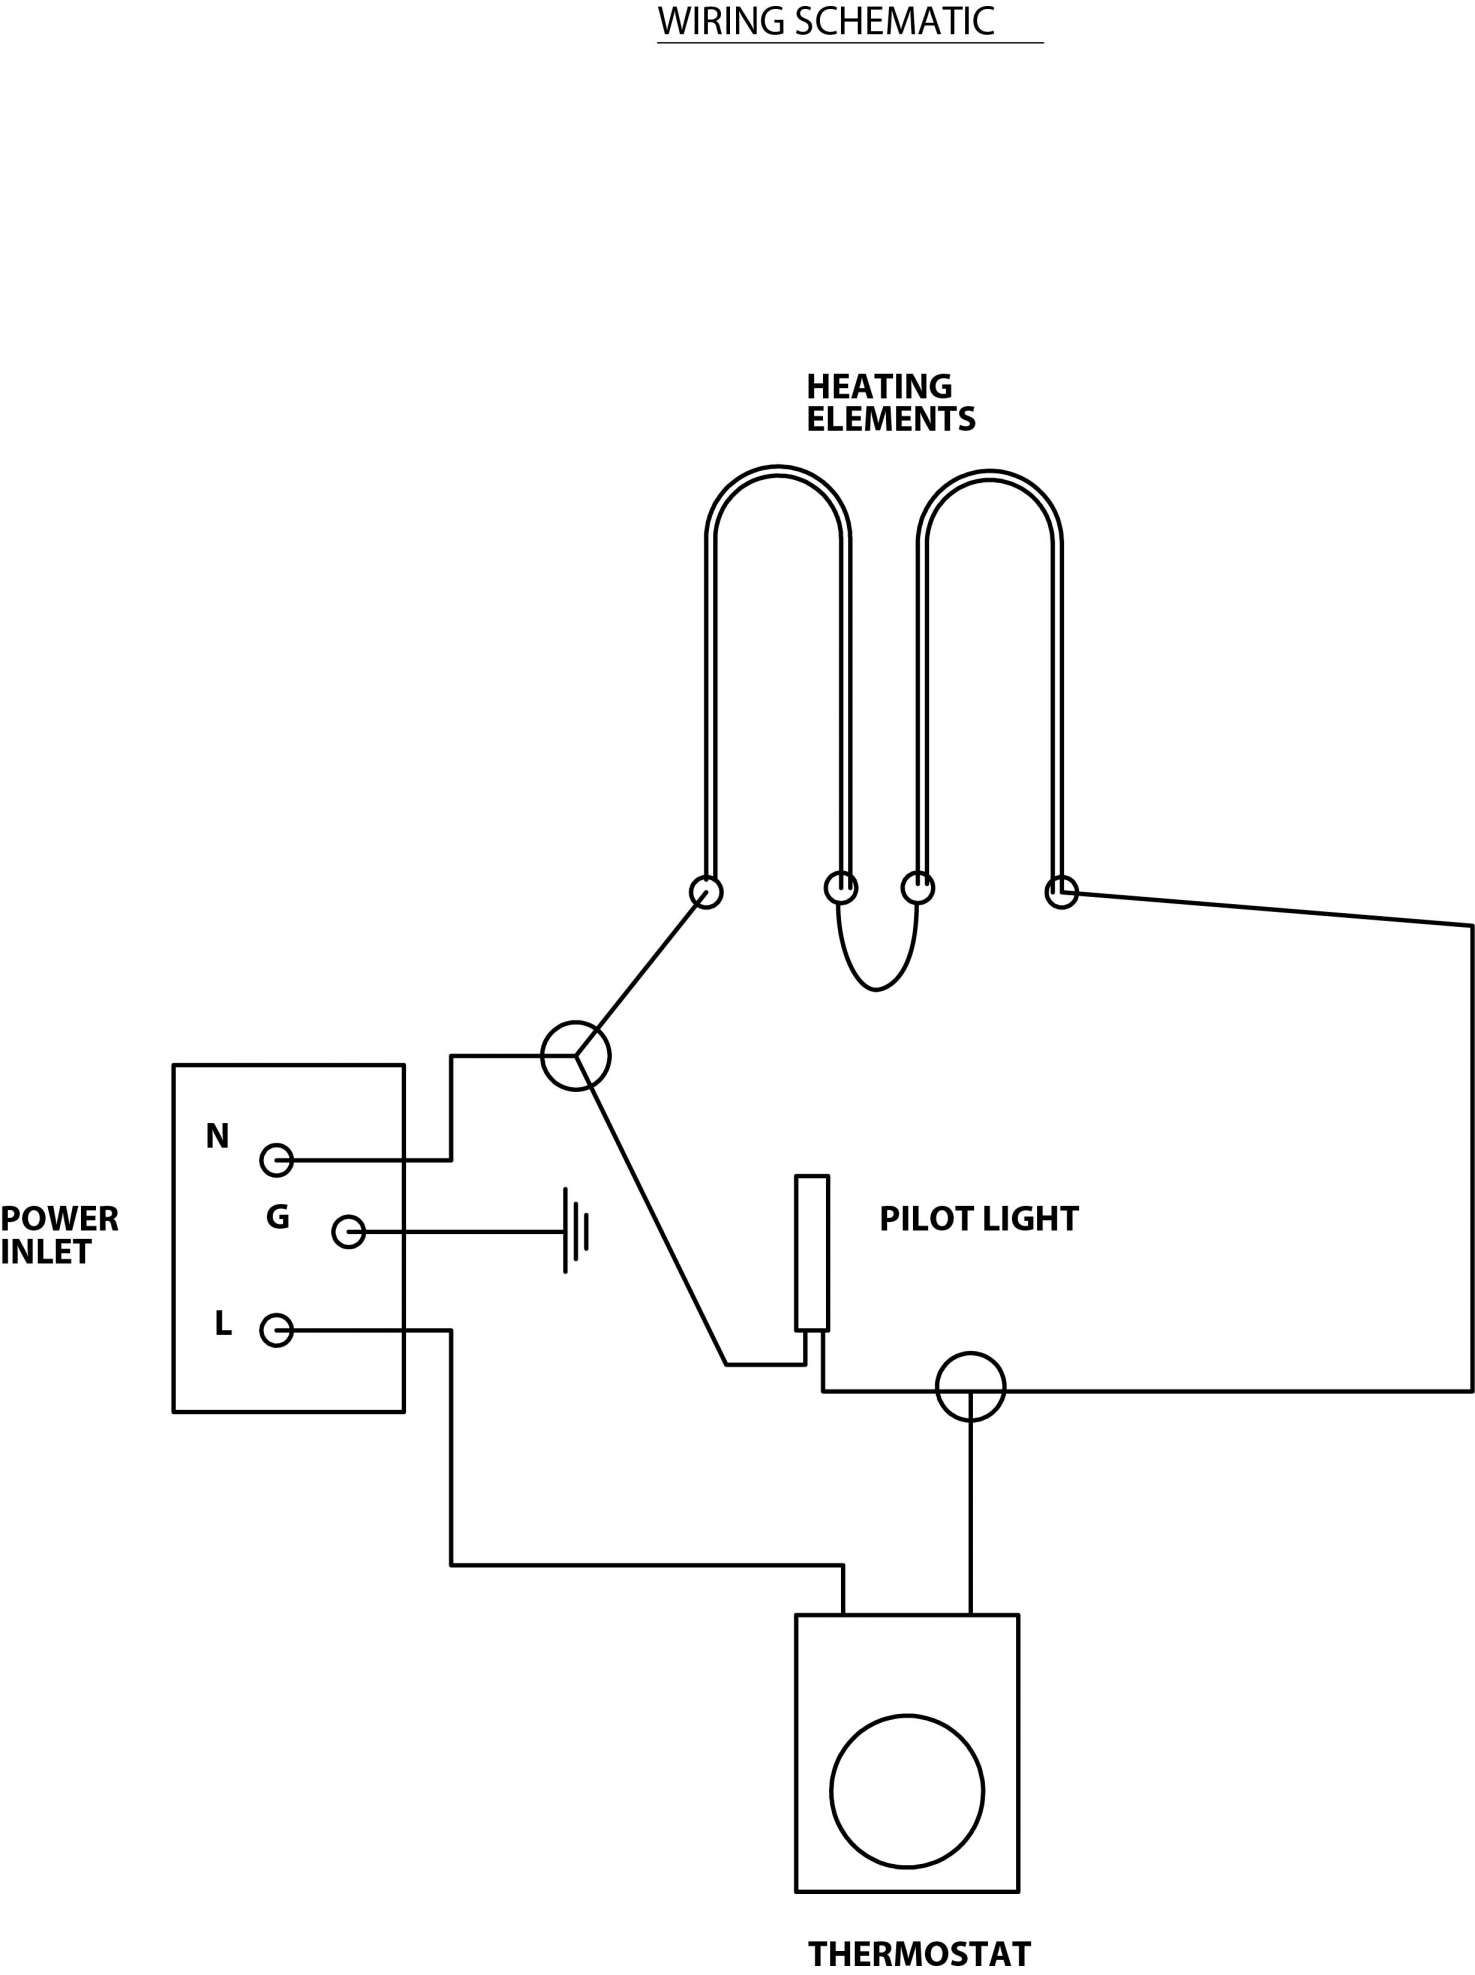 Basic Thermostat Wiring Diagram from i.pinimg.com